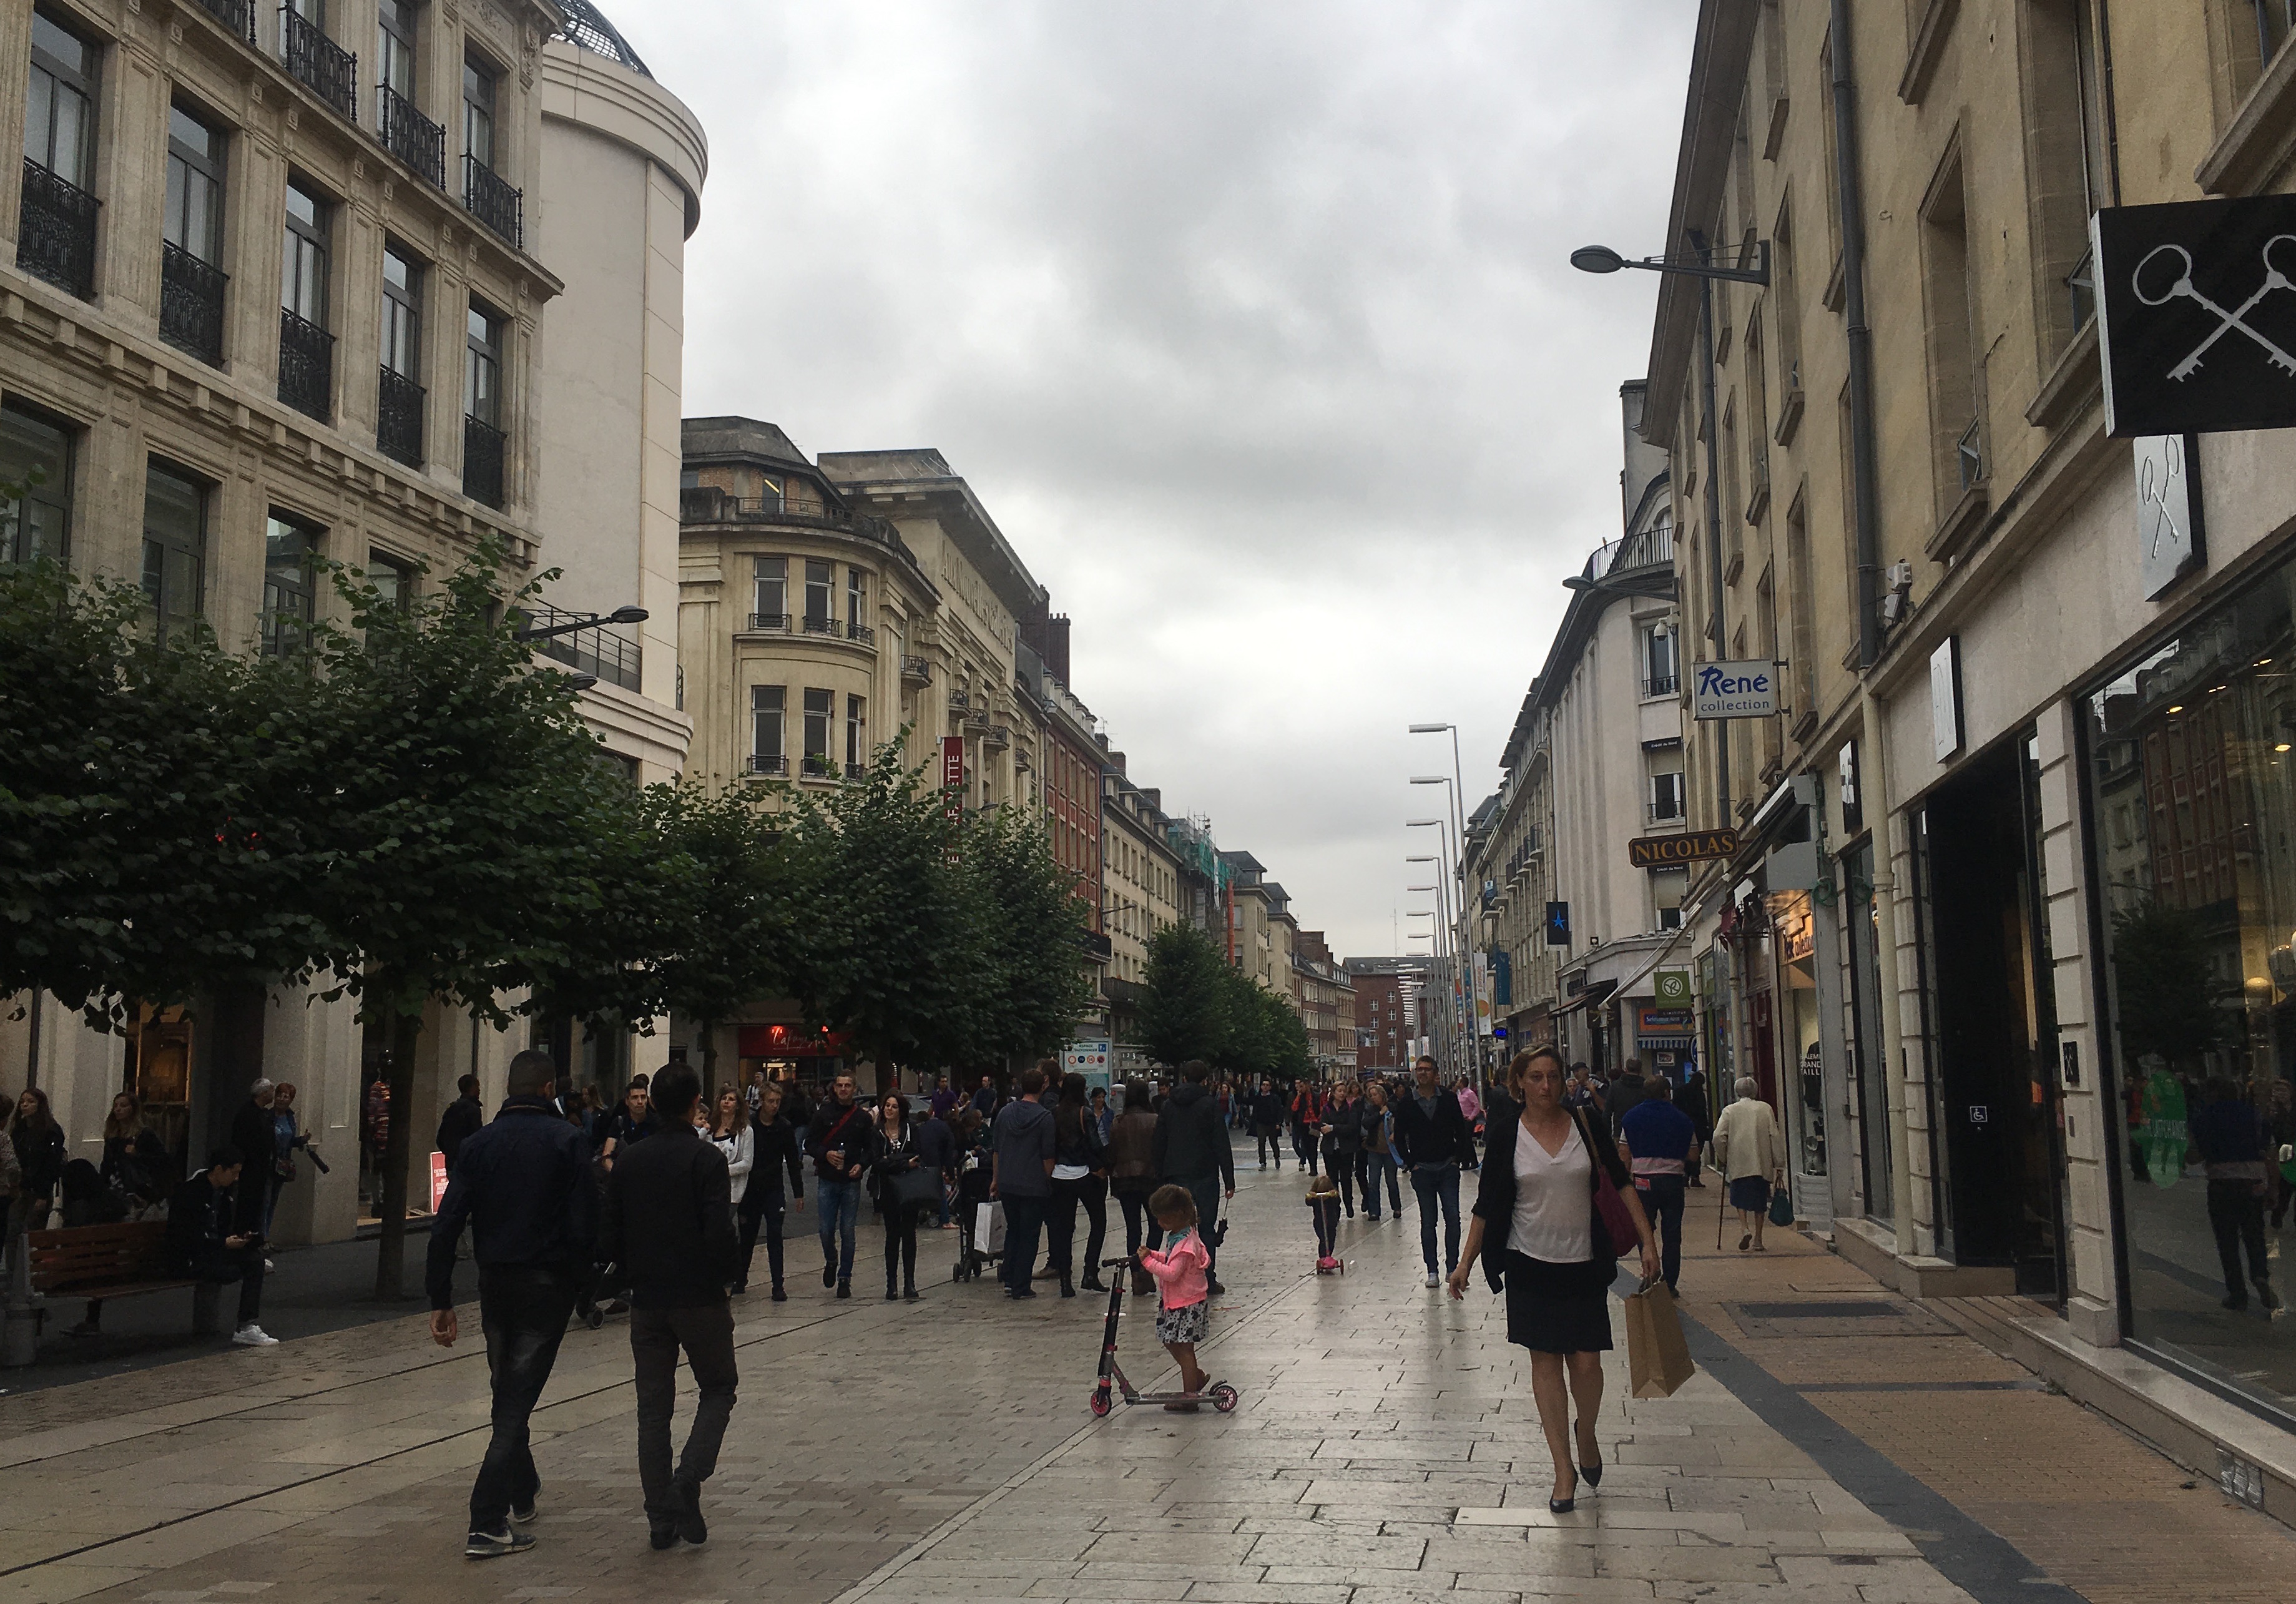 Design By: Three Examples Of Great Street Design In France